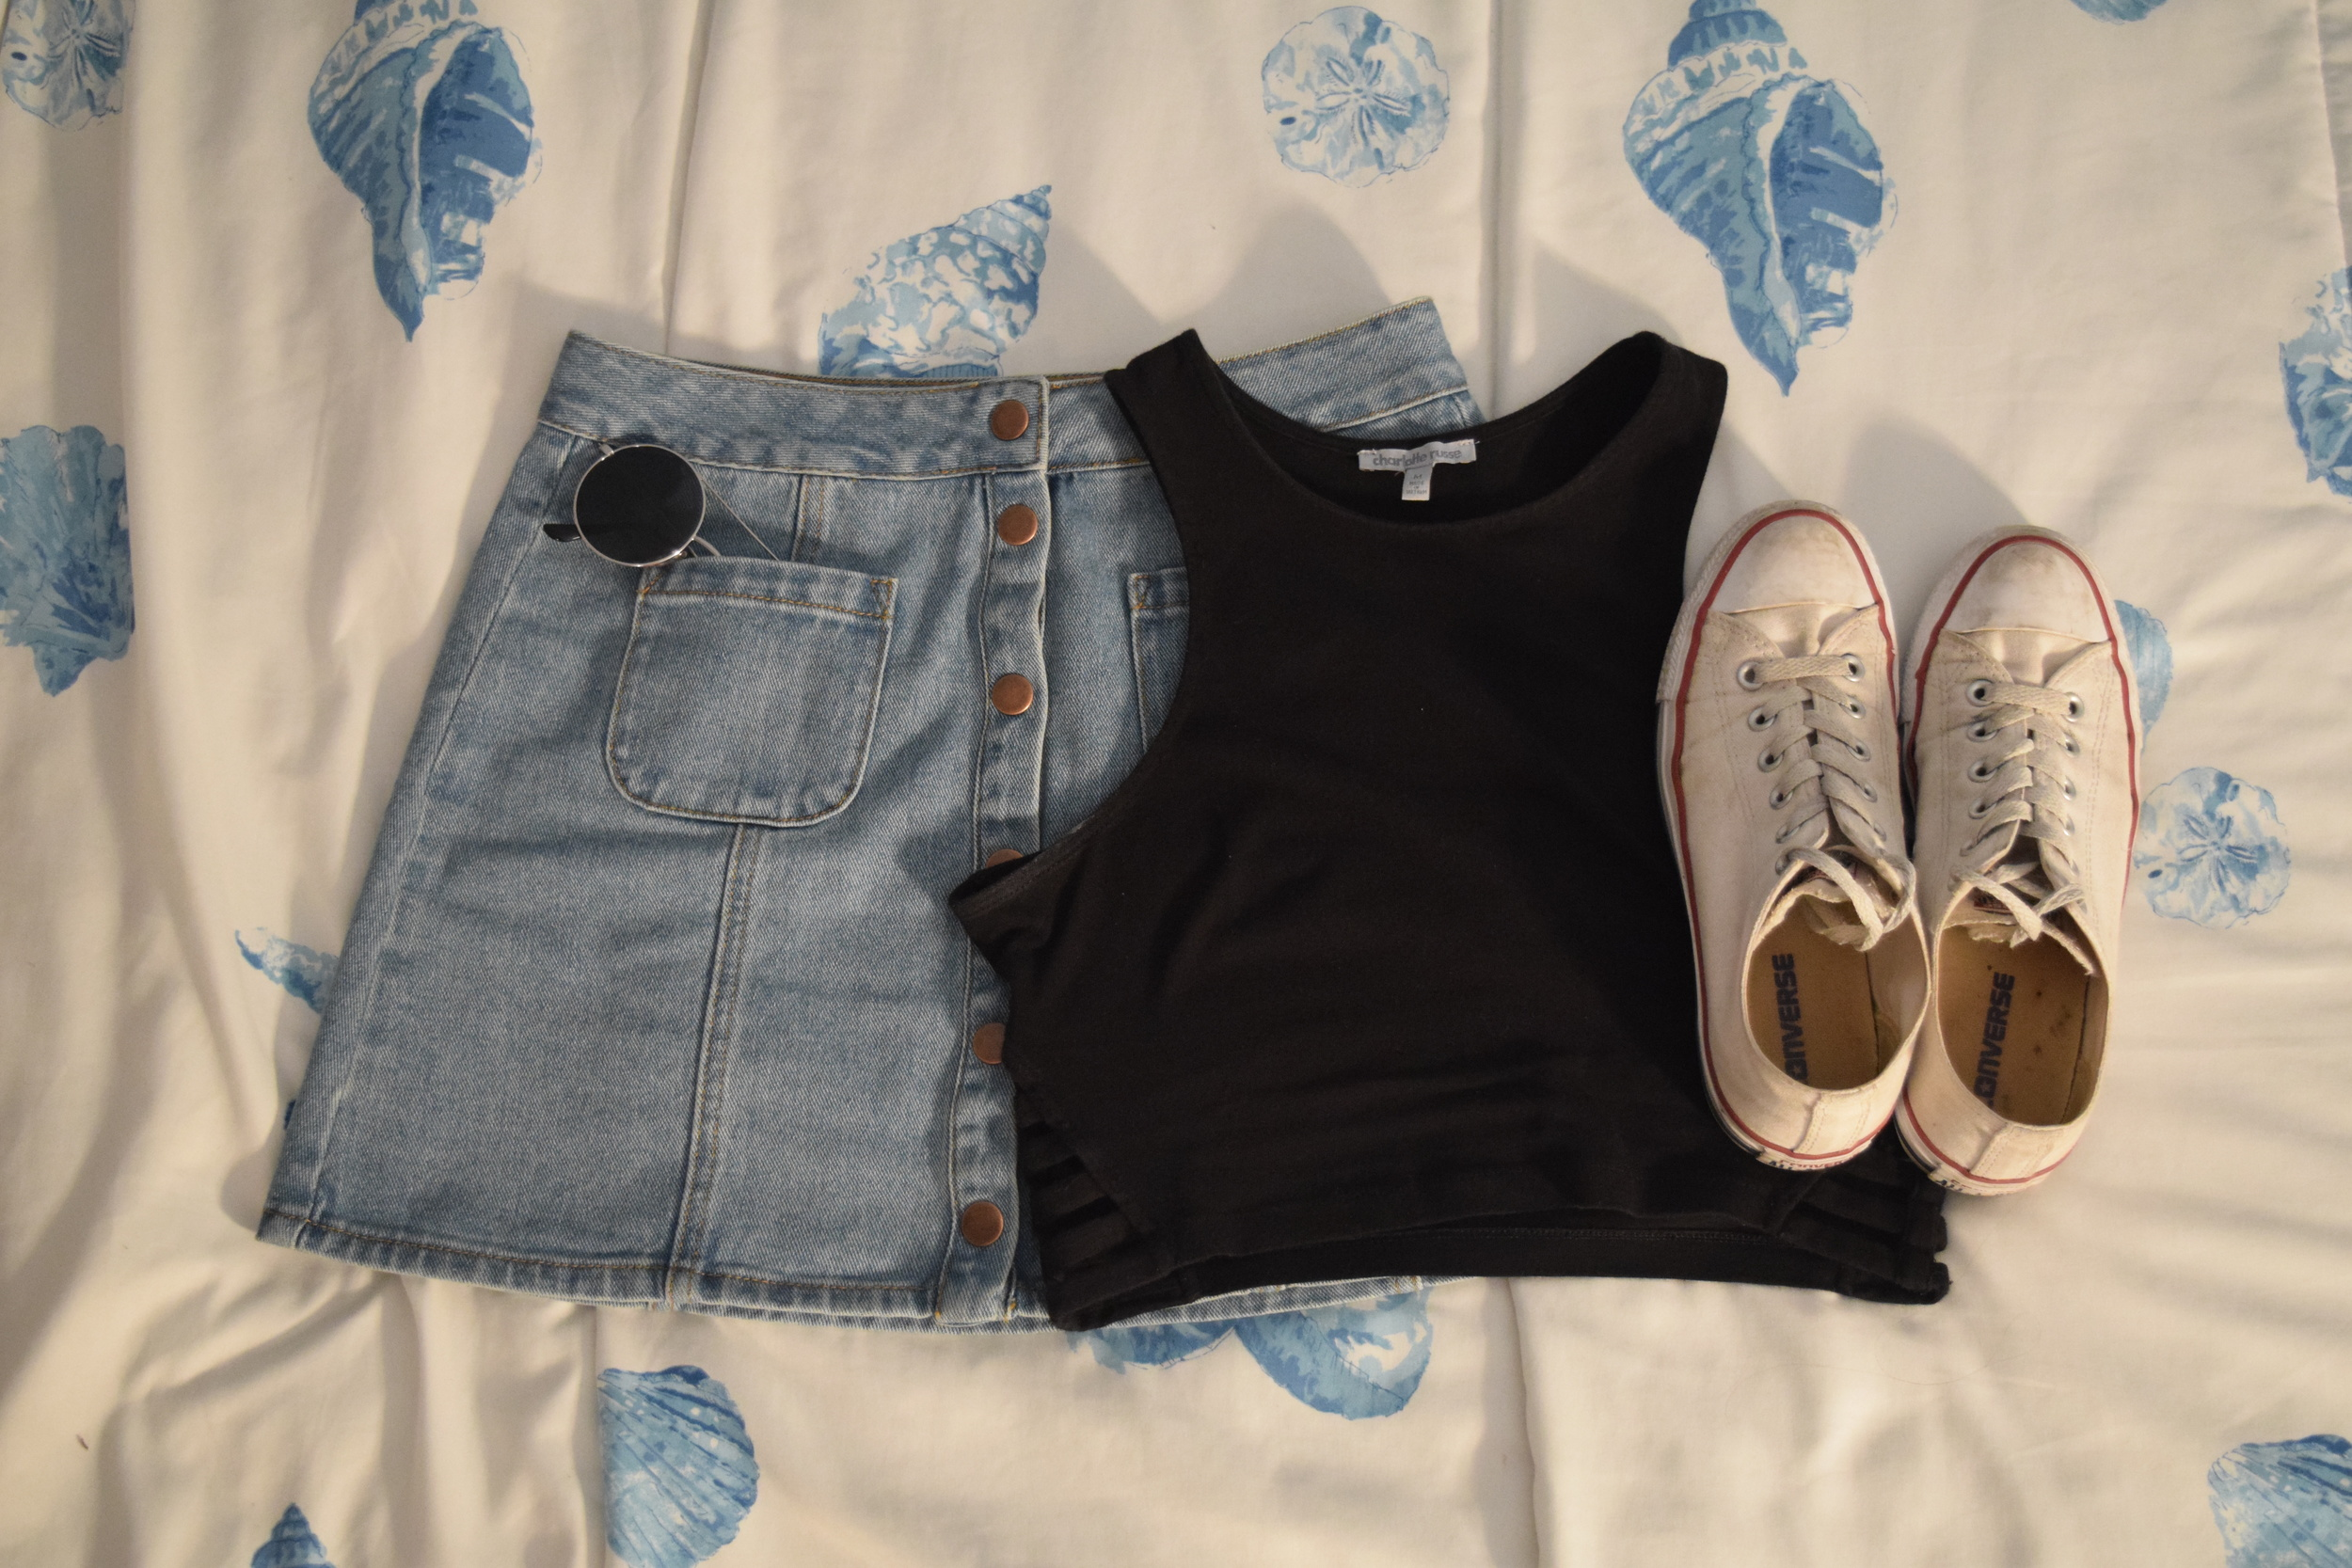 Top  (similar).  Skirt  (different color).  Sneakers .  Sunglasses  (similar).